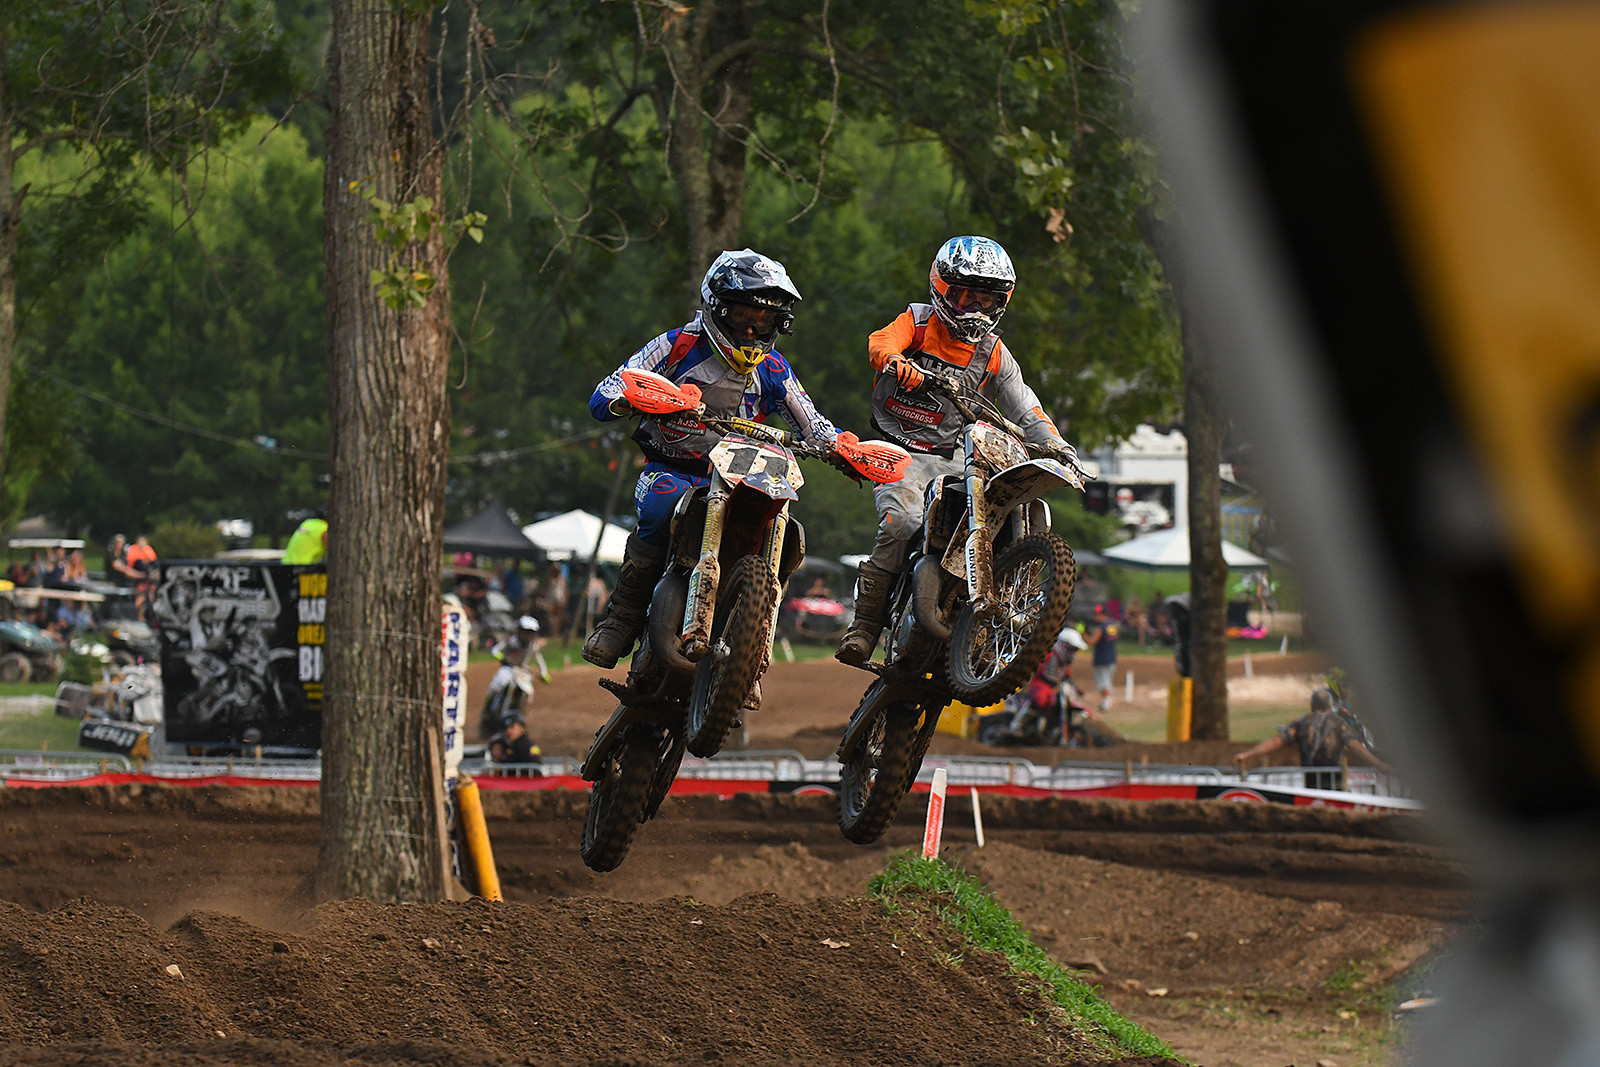 Max Vohland, whose father Tallon and Uncle Tyson are both past Loretta Lynn's winners, has been fast all week.